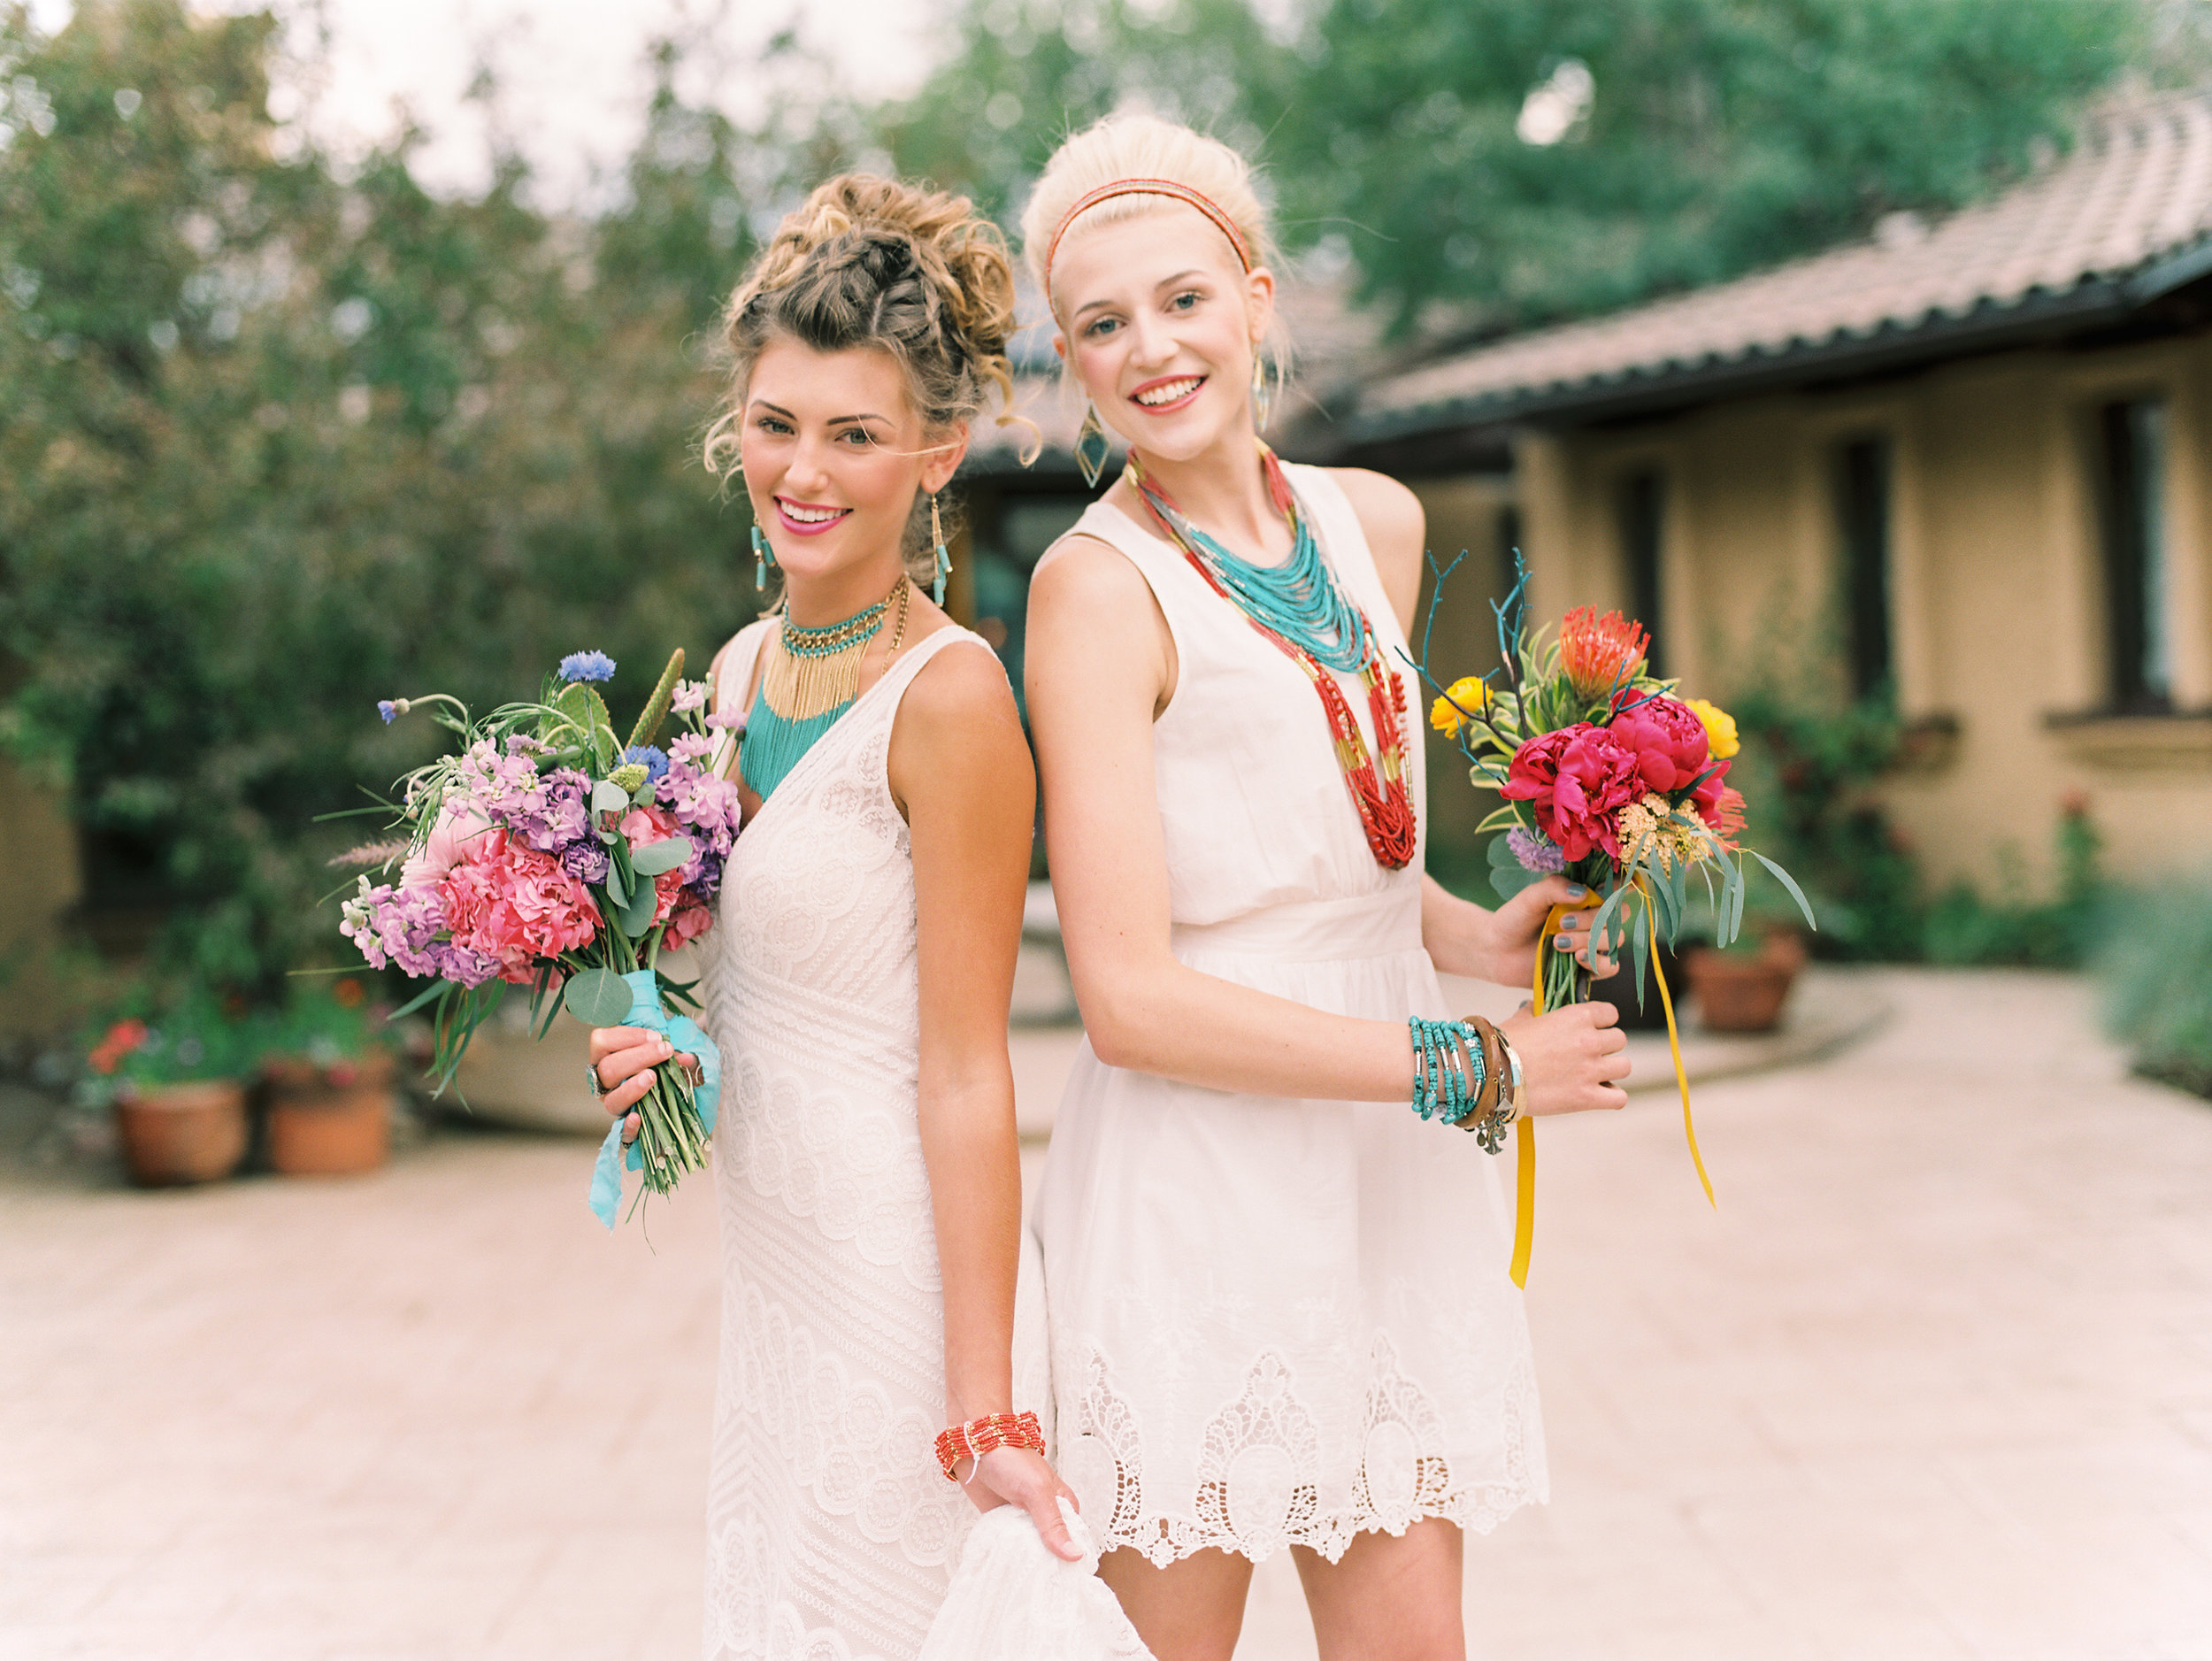 Flowers by Lace and Lilies, bridesmaid flowers, colorful flowers, vibrant flowers, Villa Parker wedding, Lisa O'Dwyer Photography, Janie Rocek Stylist Hair and Makeup, Lace and Lilies, Dora Grace Bridal-159 copy.jpg